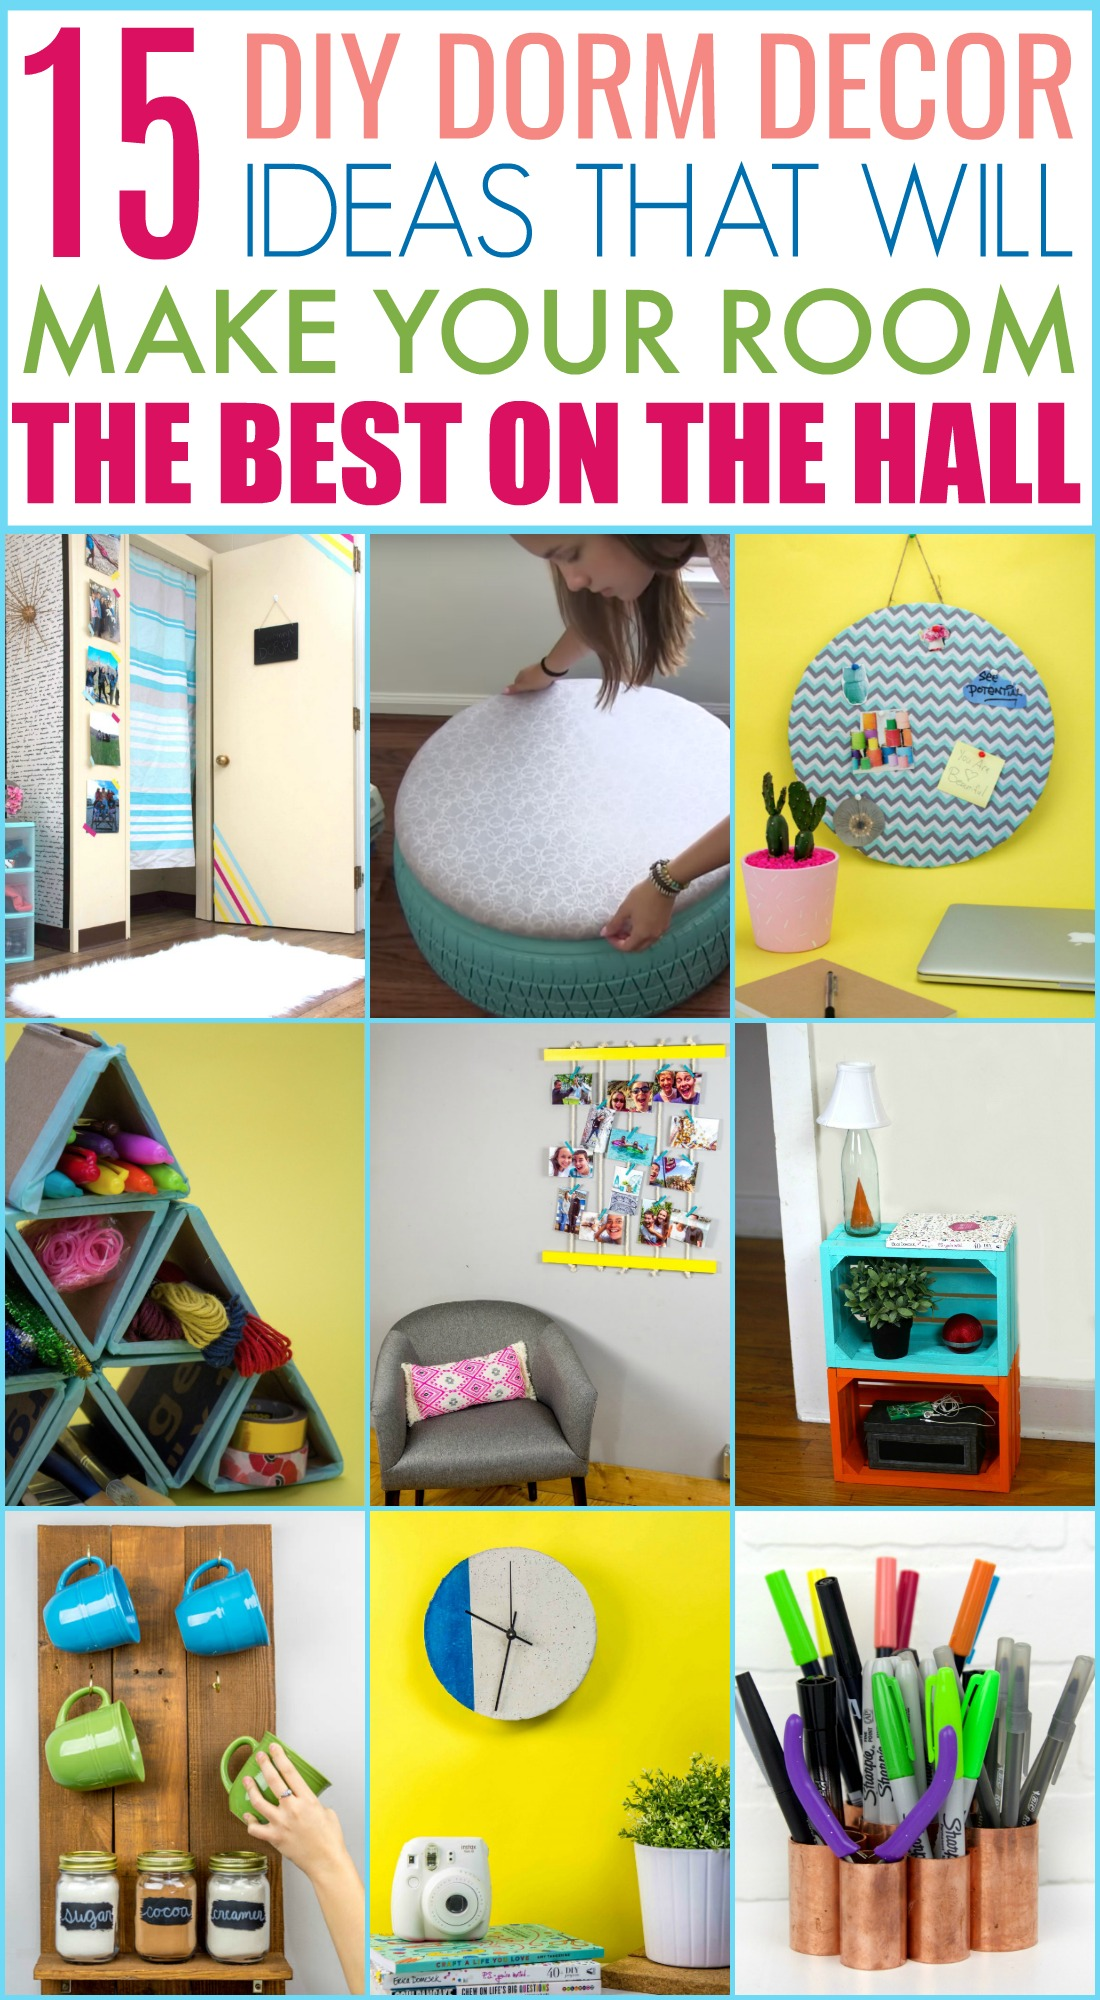 diy dorm decor ideas, dorm room, diy dorm organization, dorm hacks